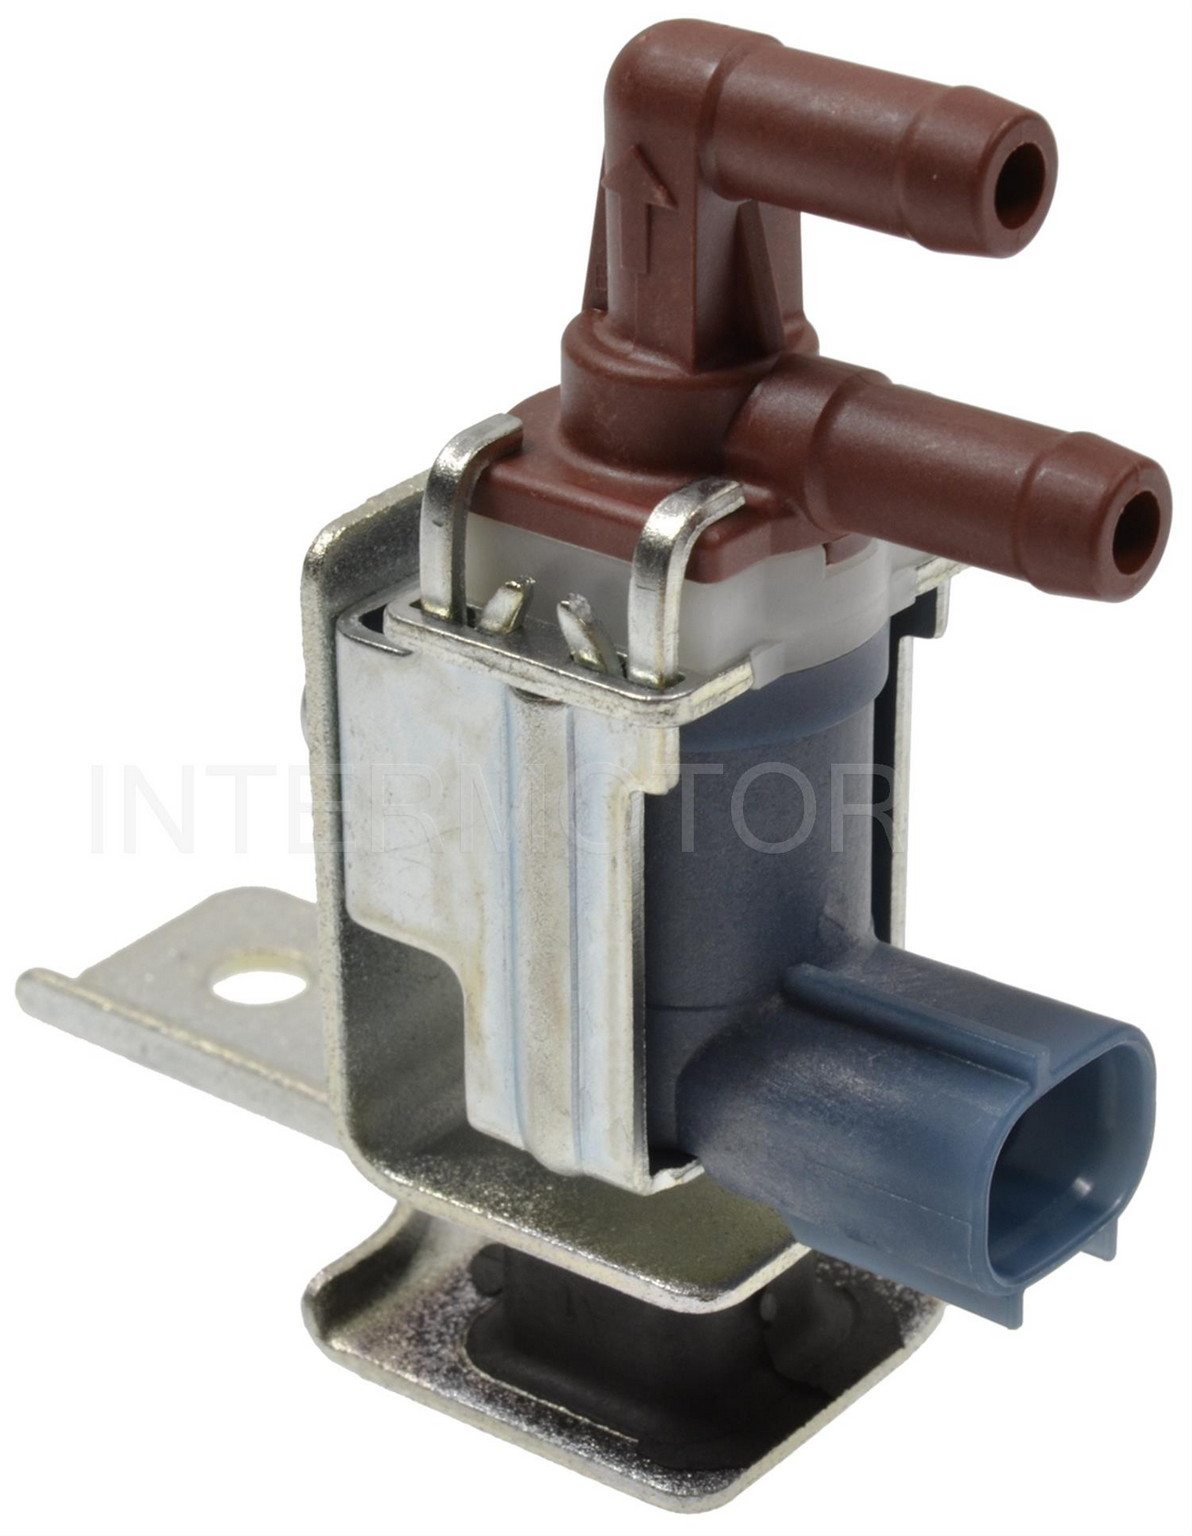 2001 Toyota Corolla Vapor Canister Purge Solenoid Standard CP709